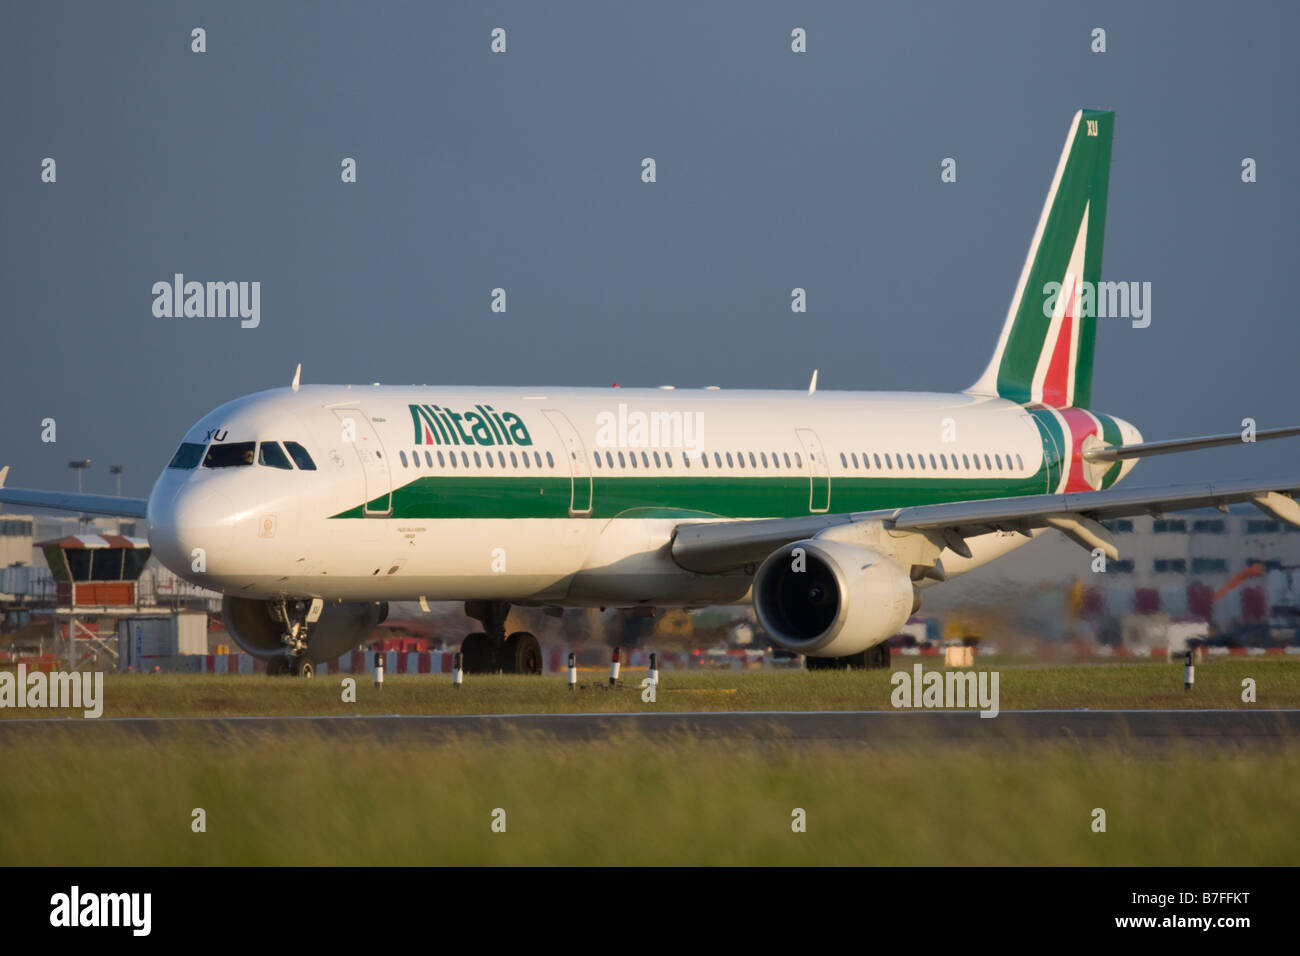 Alitalia Airbus A321-112 taxiing for departure at London Heathrow airport. - Stock Image